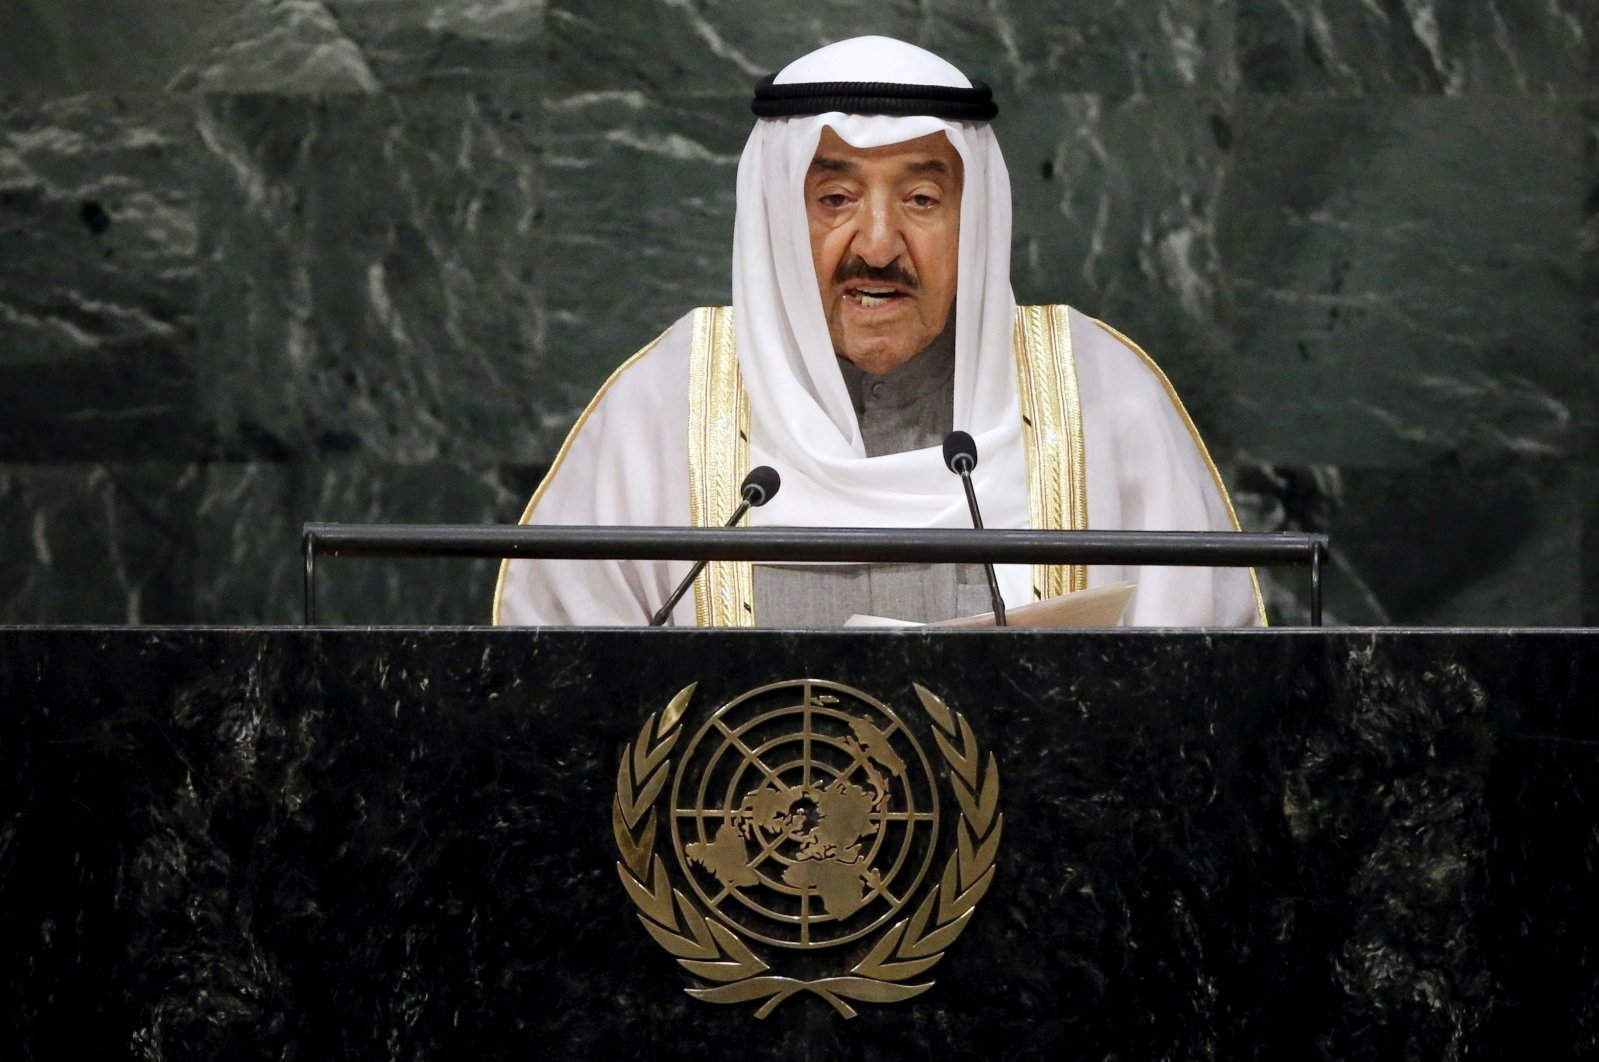 Kuwait's Emir Sheikh Sabah Al Ahmad Al Sabah addresses a plenary meeting of the United Nations Sustainable Development Summit 2015 at the U.N. headquarters in New York City, New York, U.S., Sept. 26, 2015. (Reuters Photo)